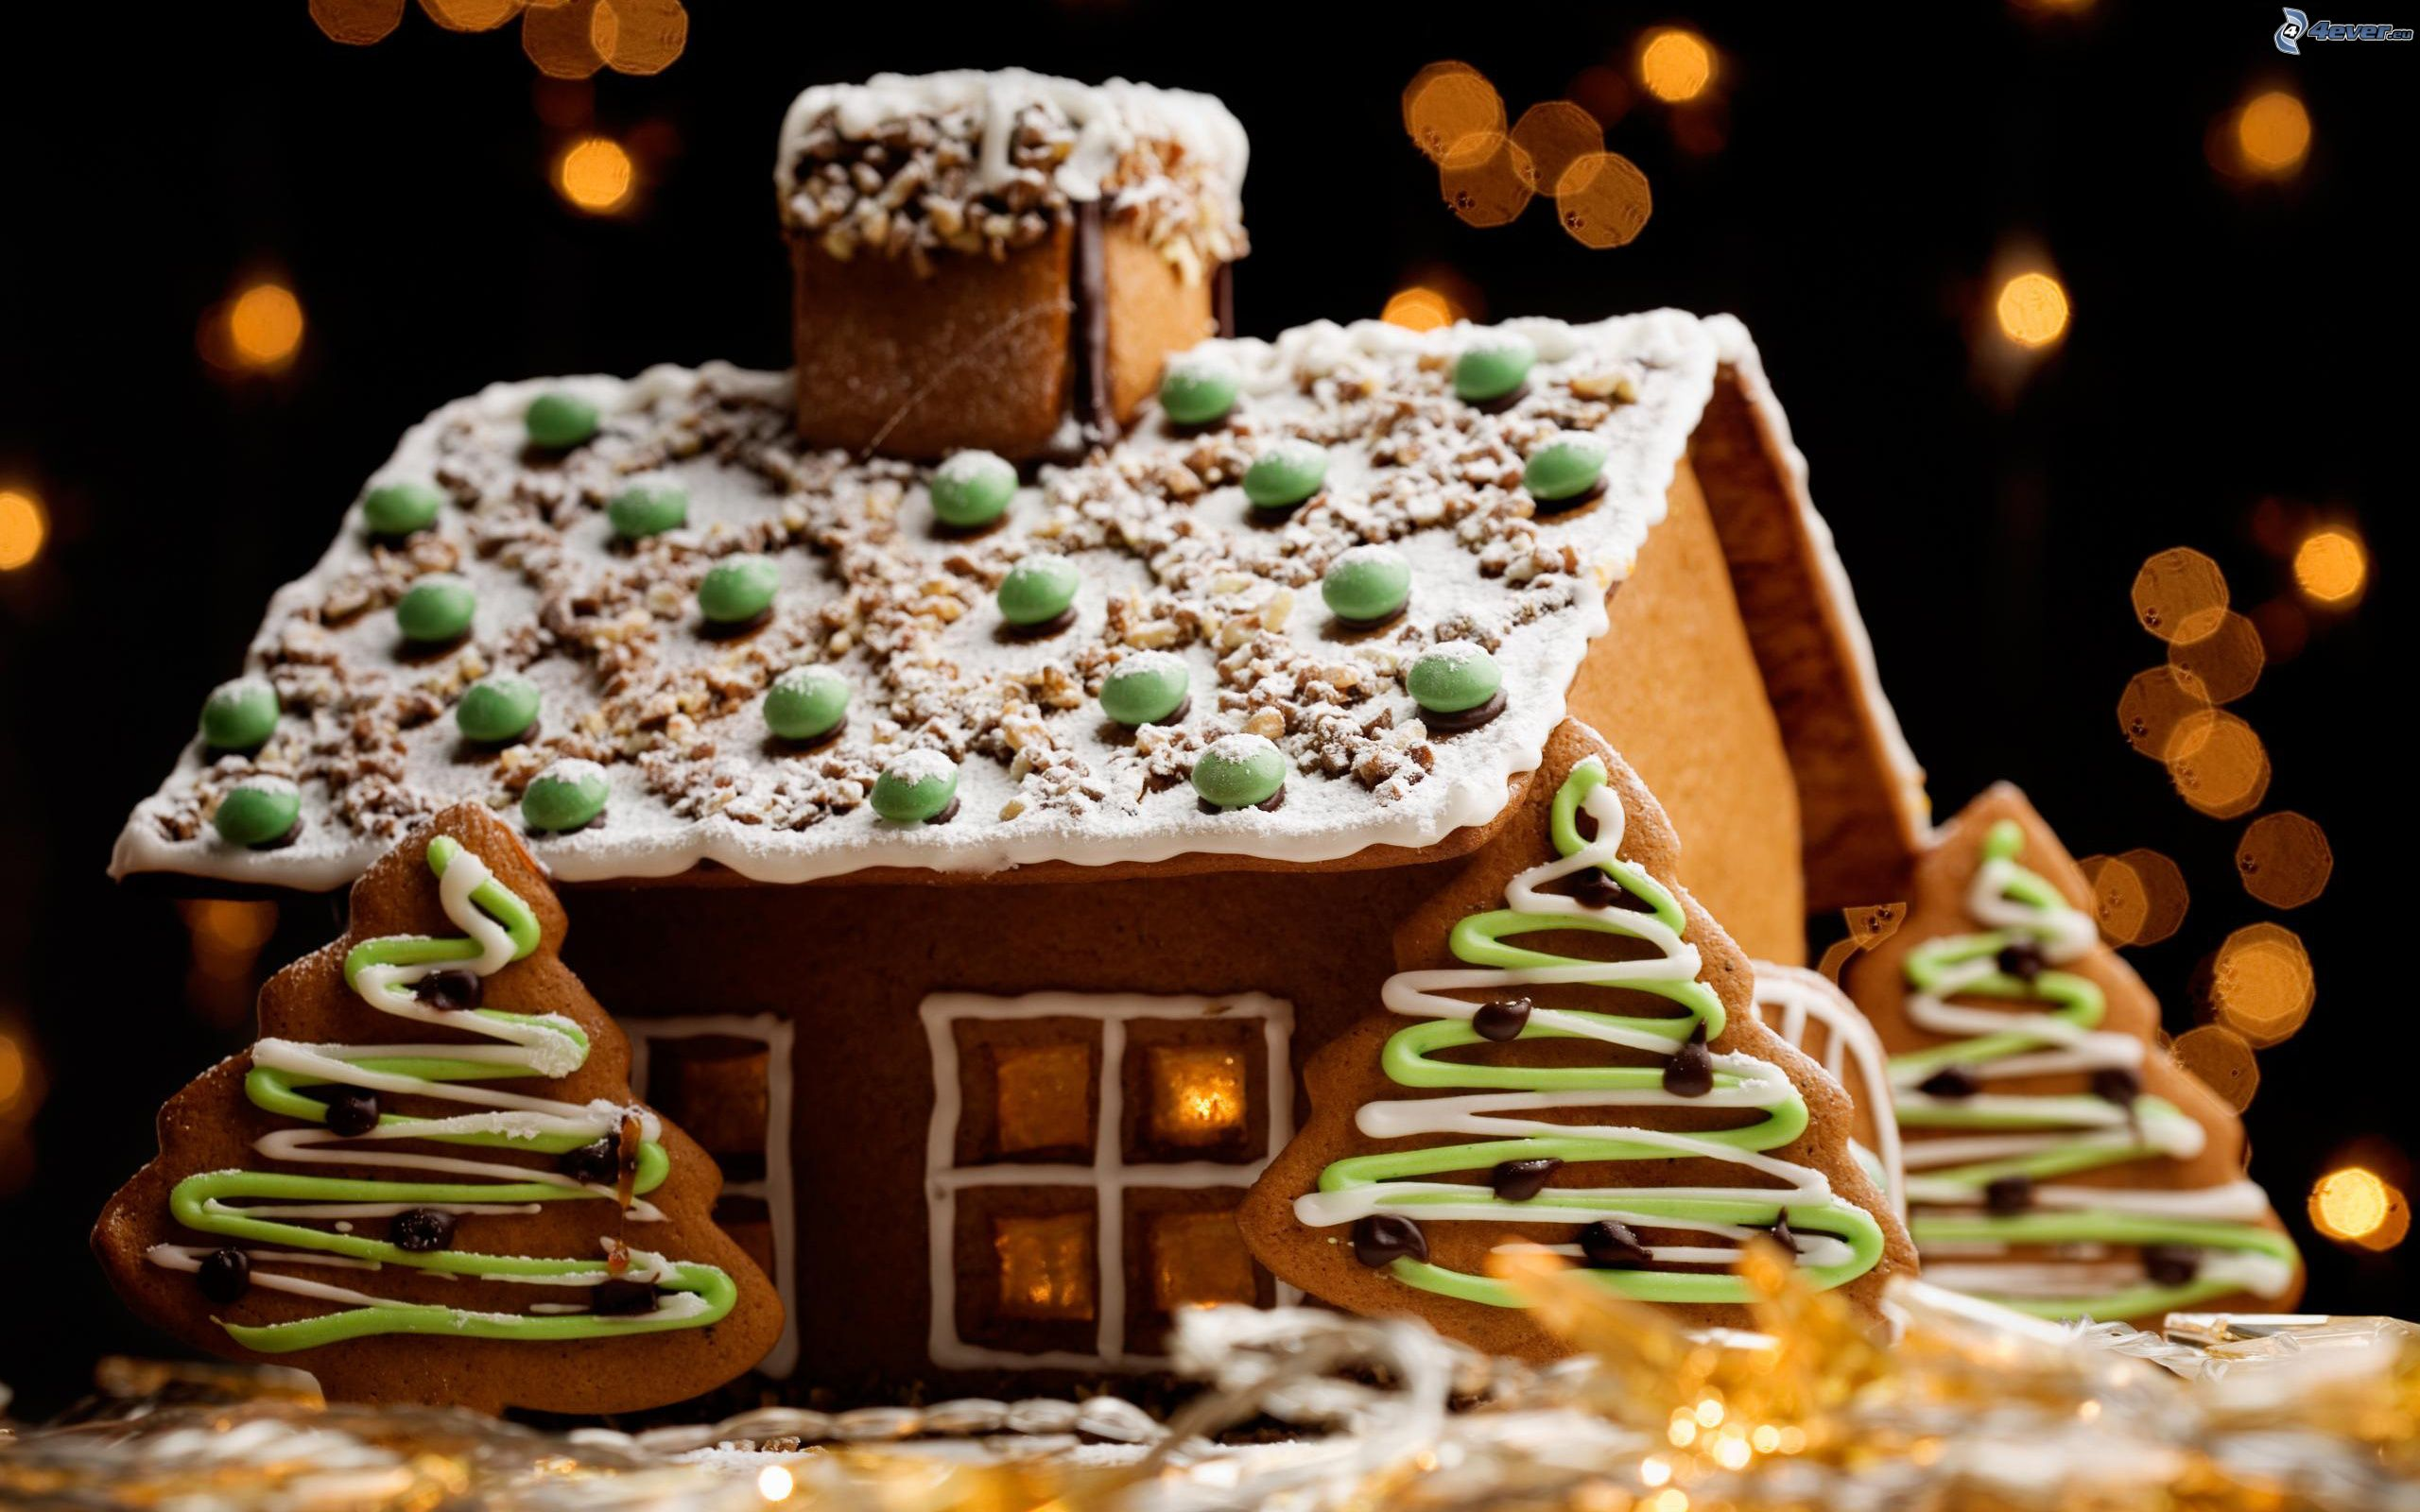 New Year Cake Images Hd : Lebkuchenhaus